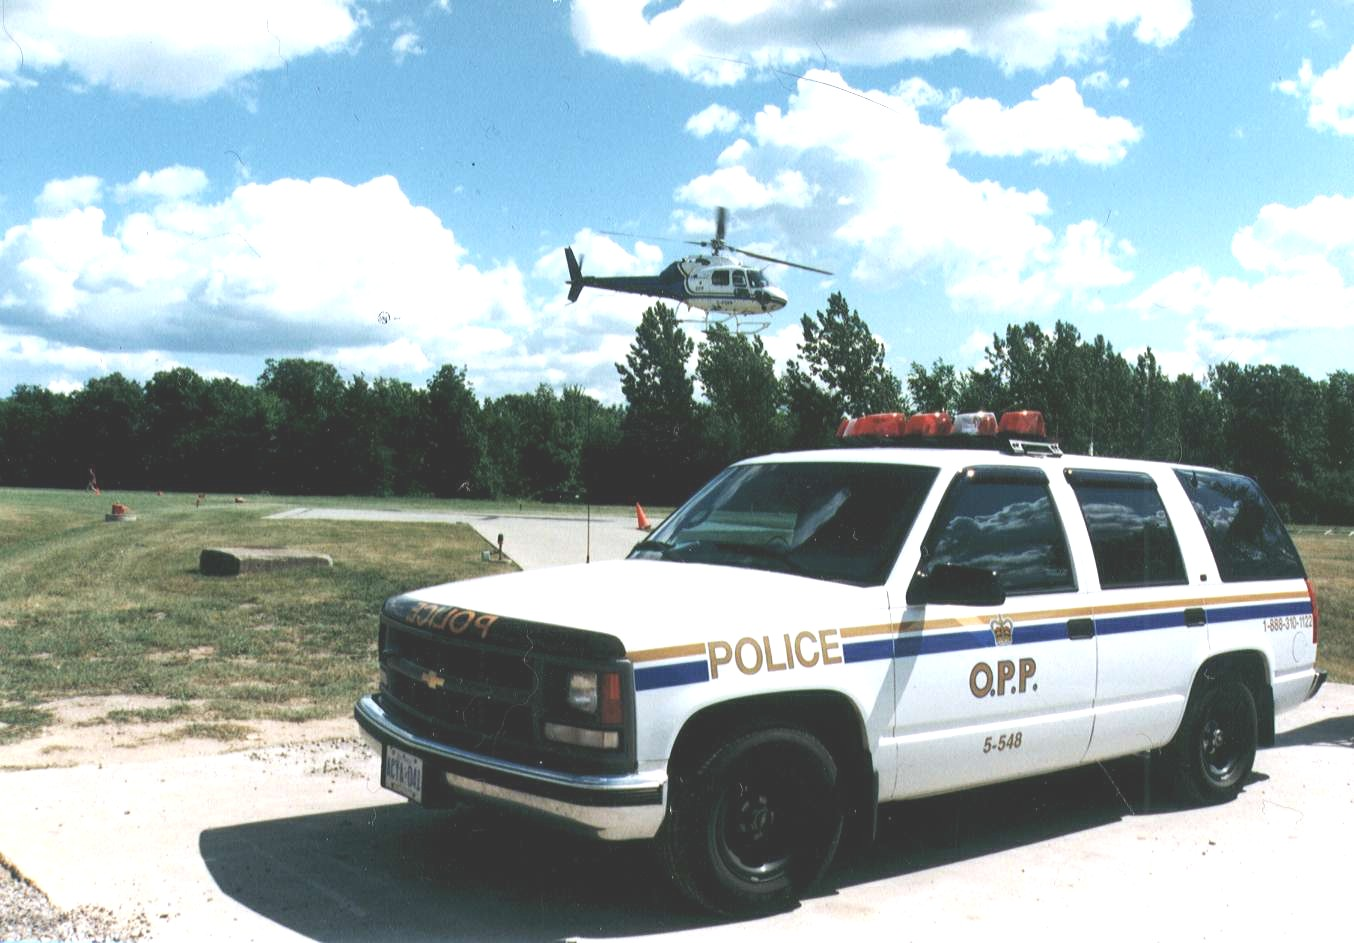 ON - Ontario Provincial Police